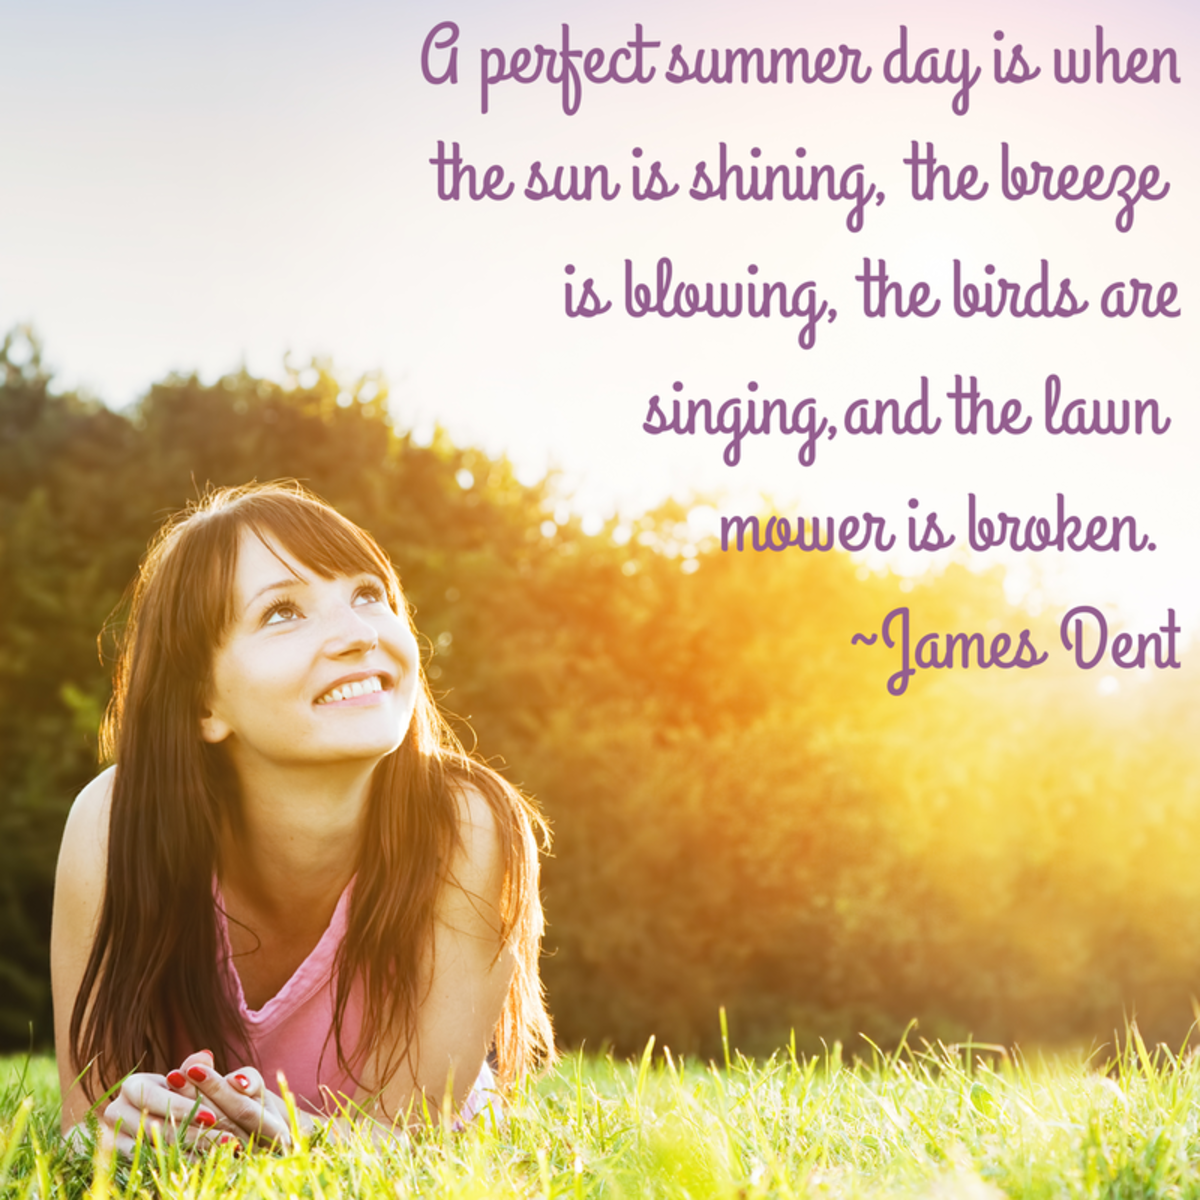 Enjoy a perfect summer day.